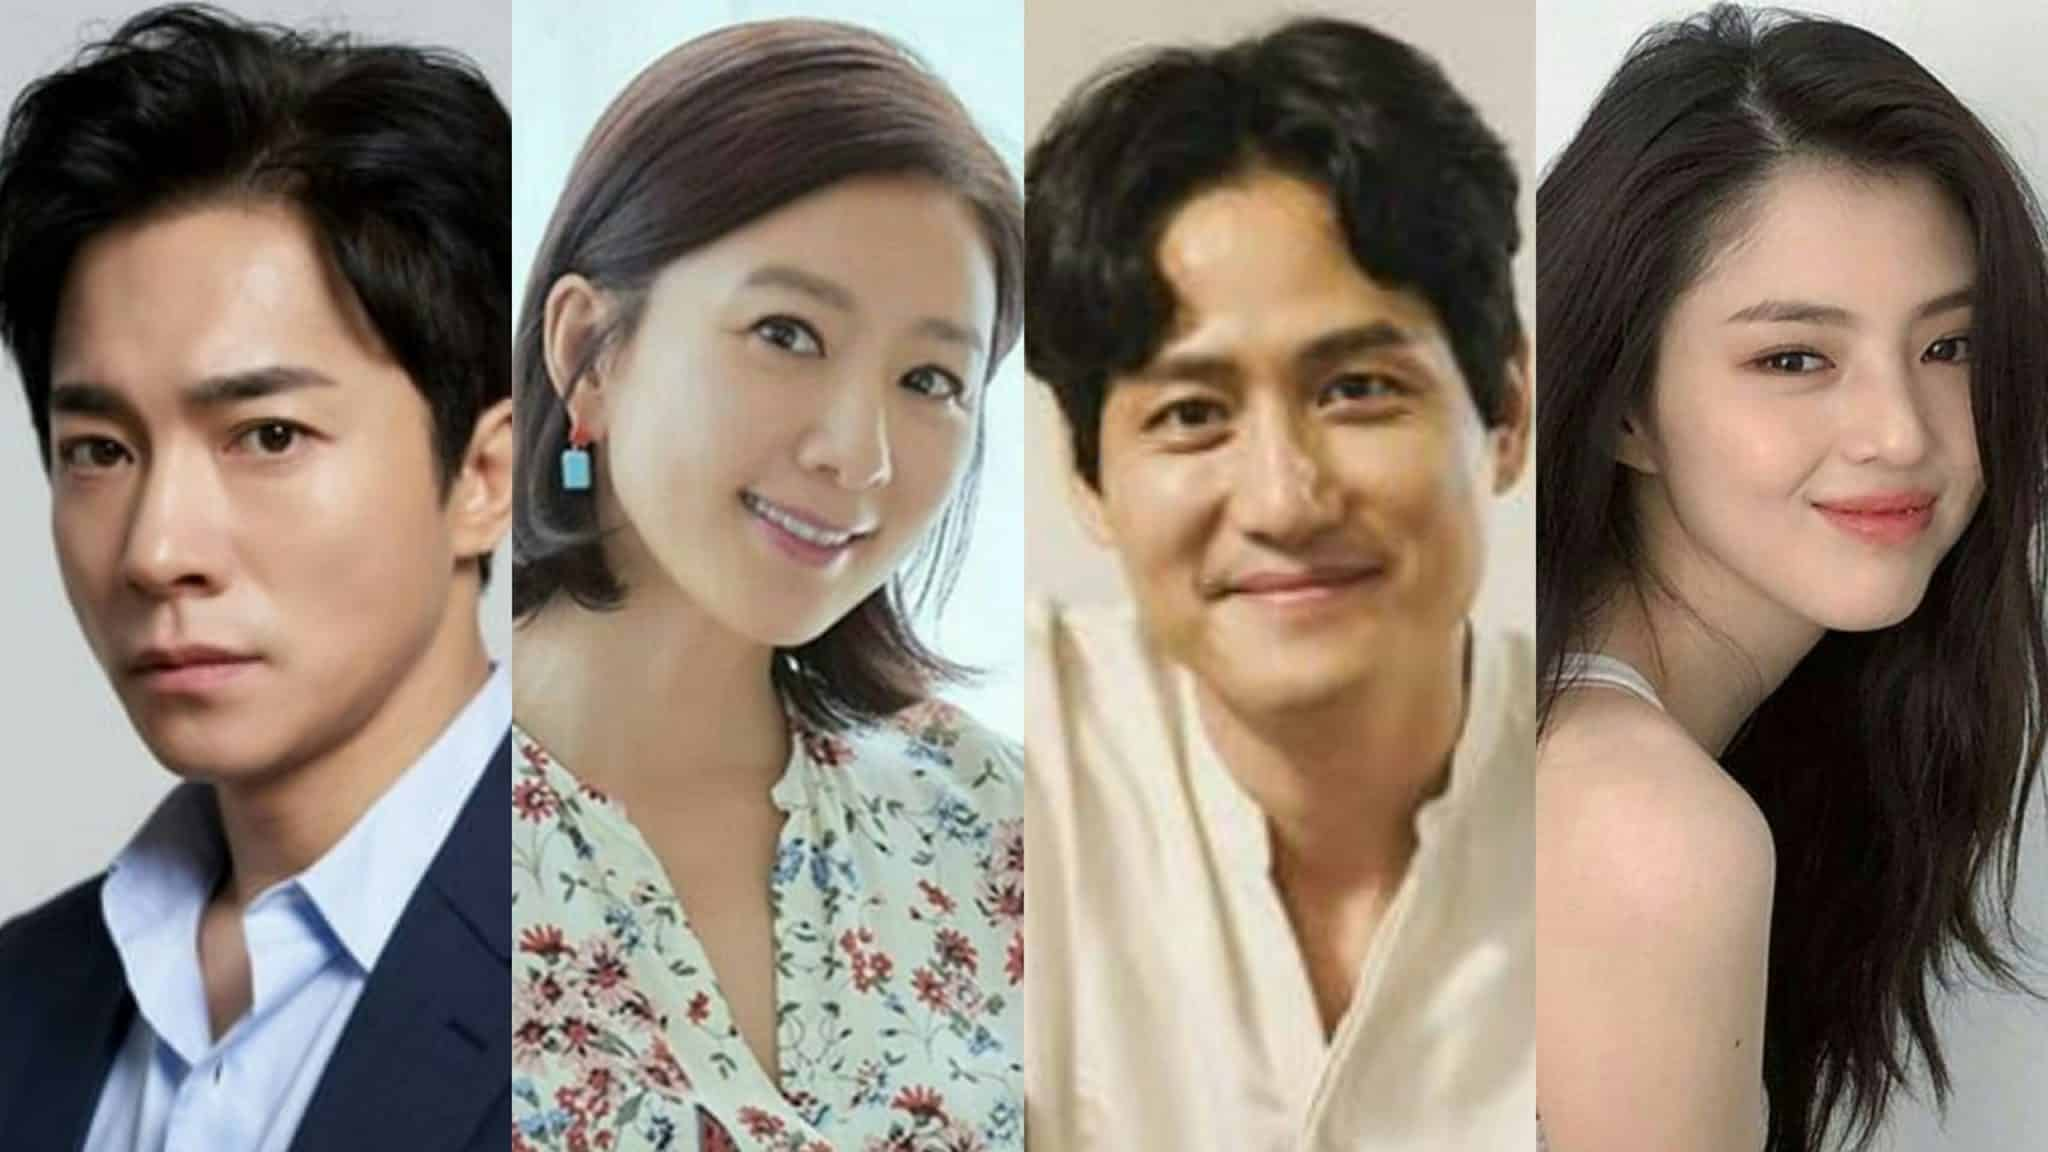 The World of The Married Cast Selected with Long Casting